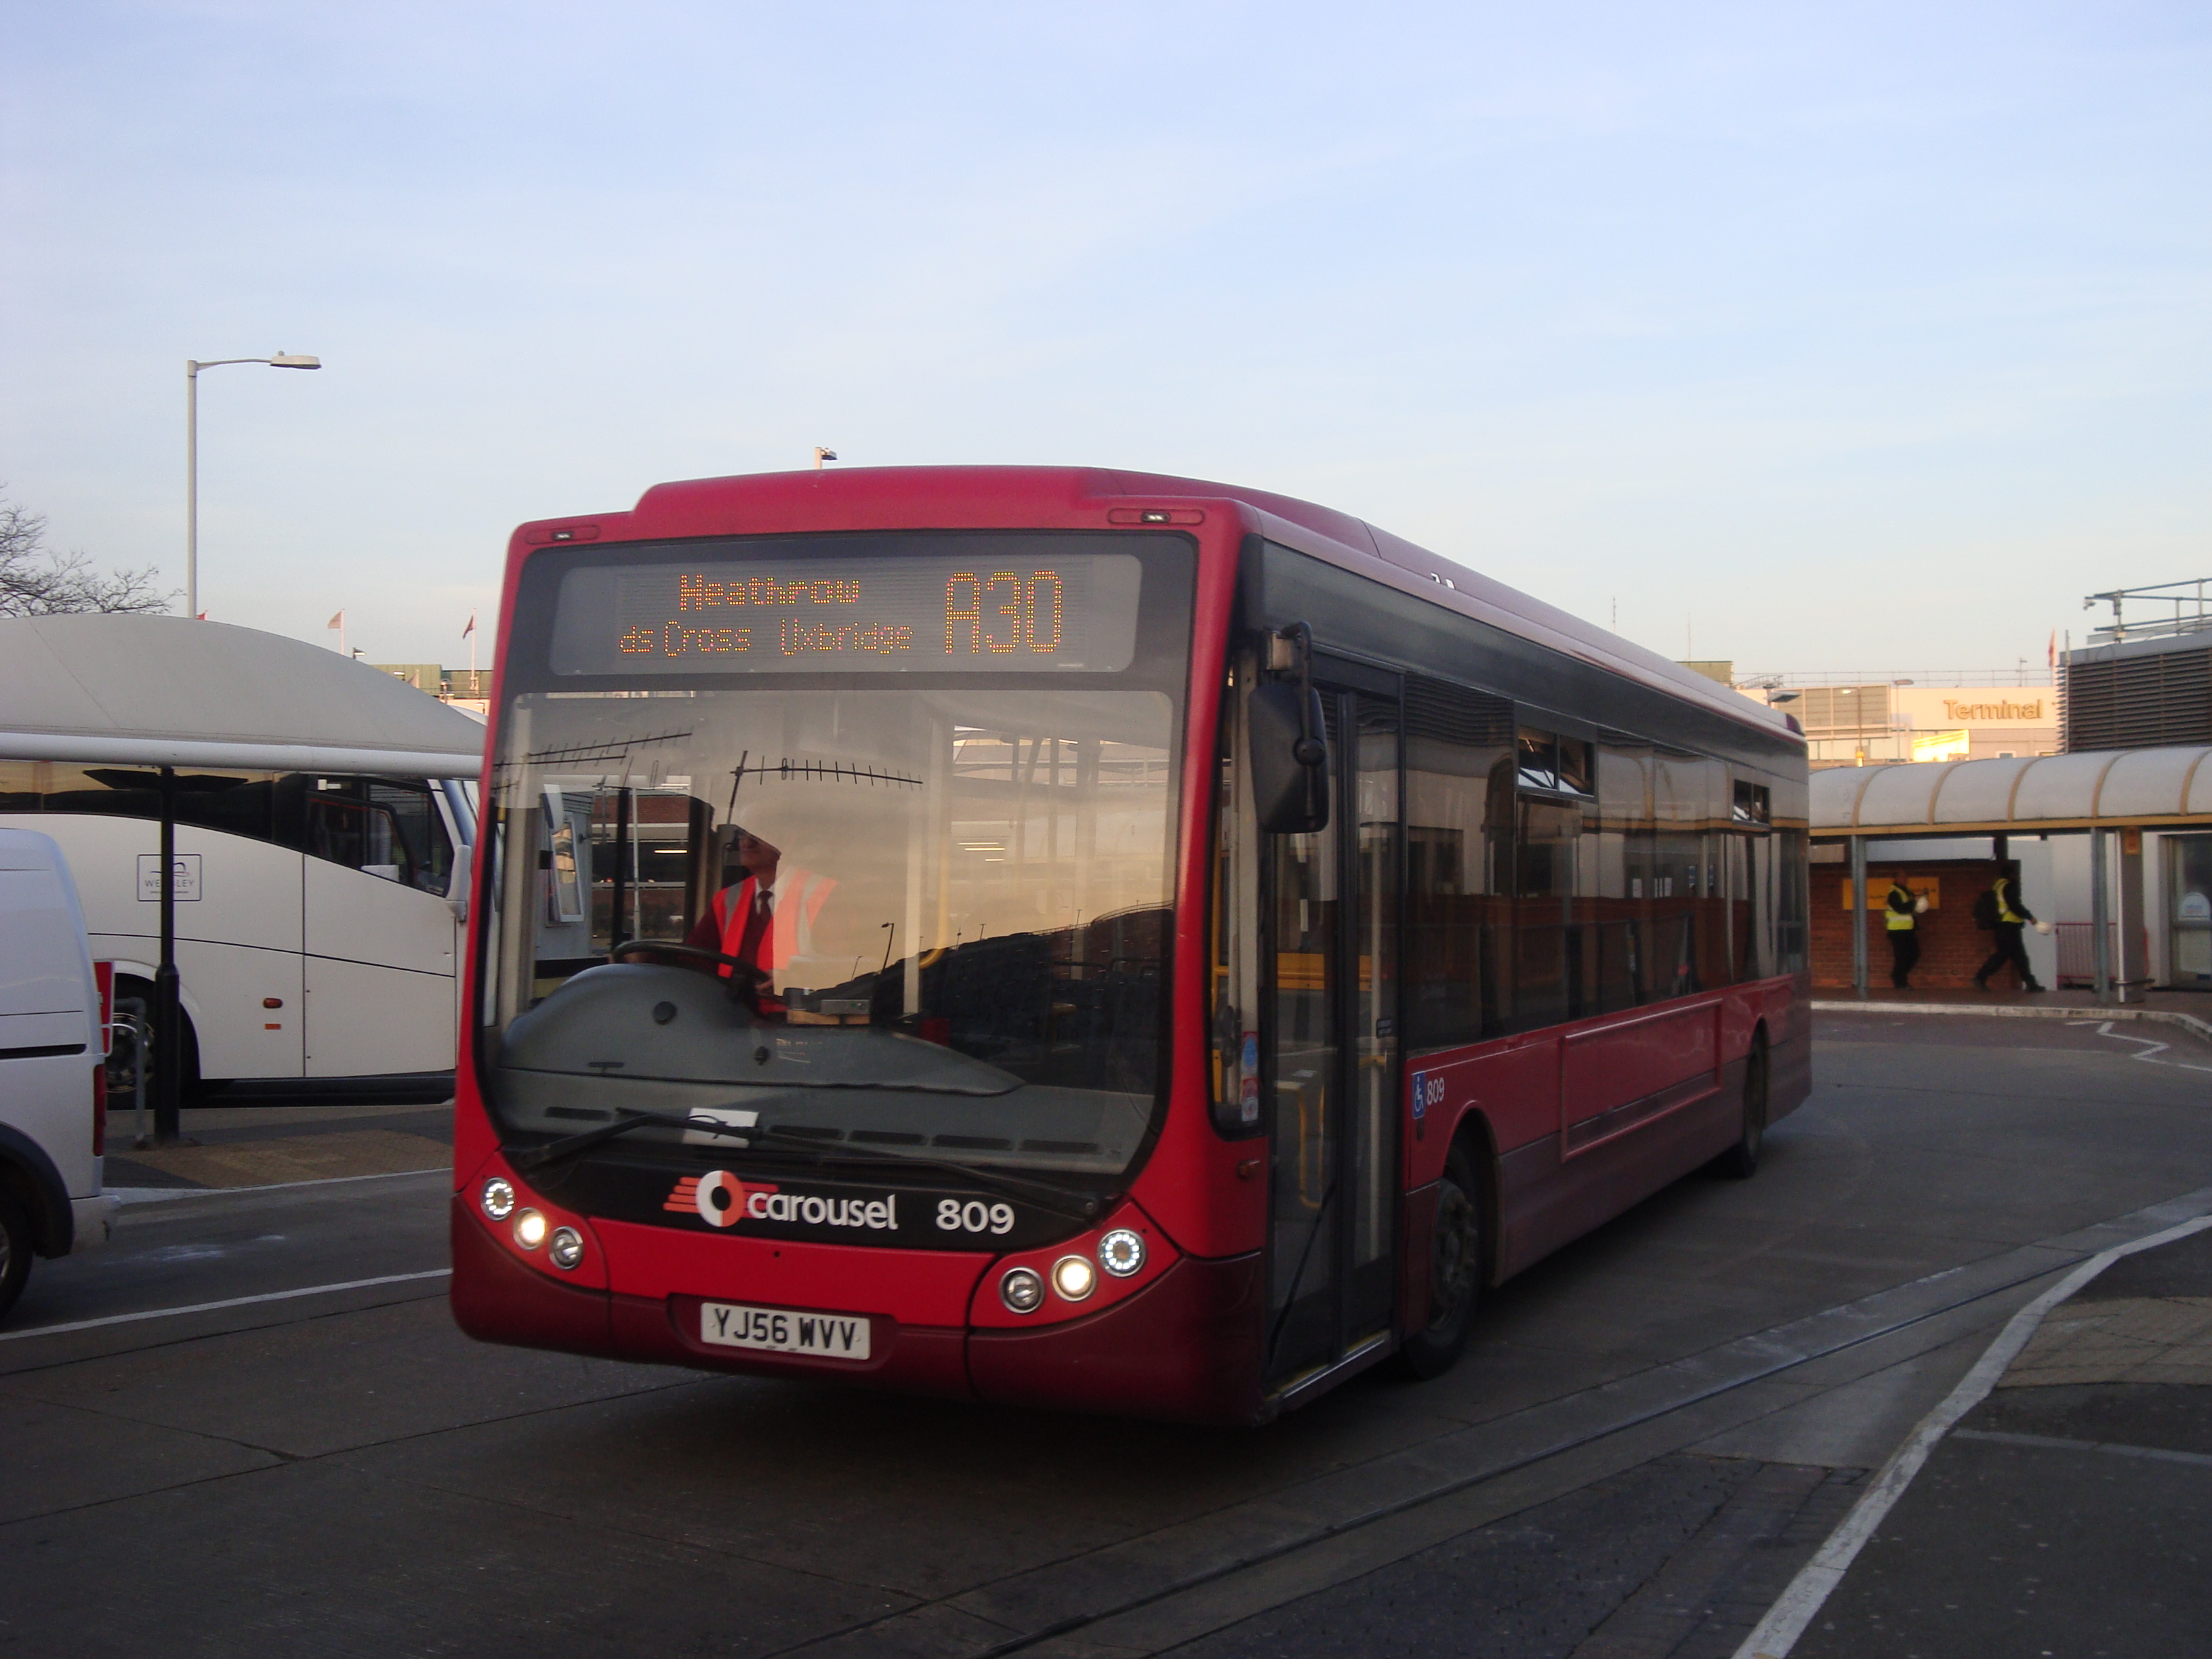 File:Carousel Buses 809 on Route A30, Heathrow Central